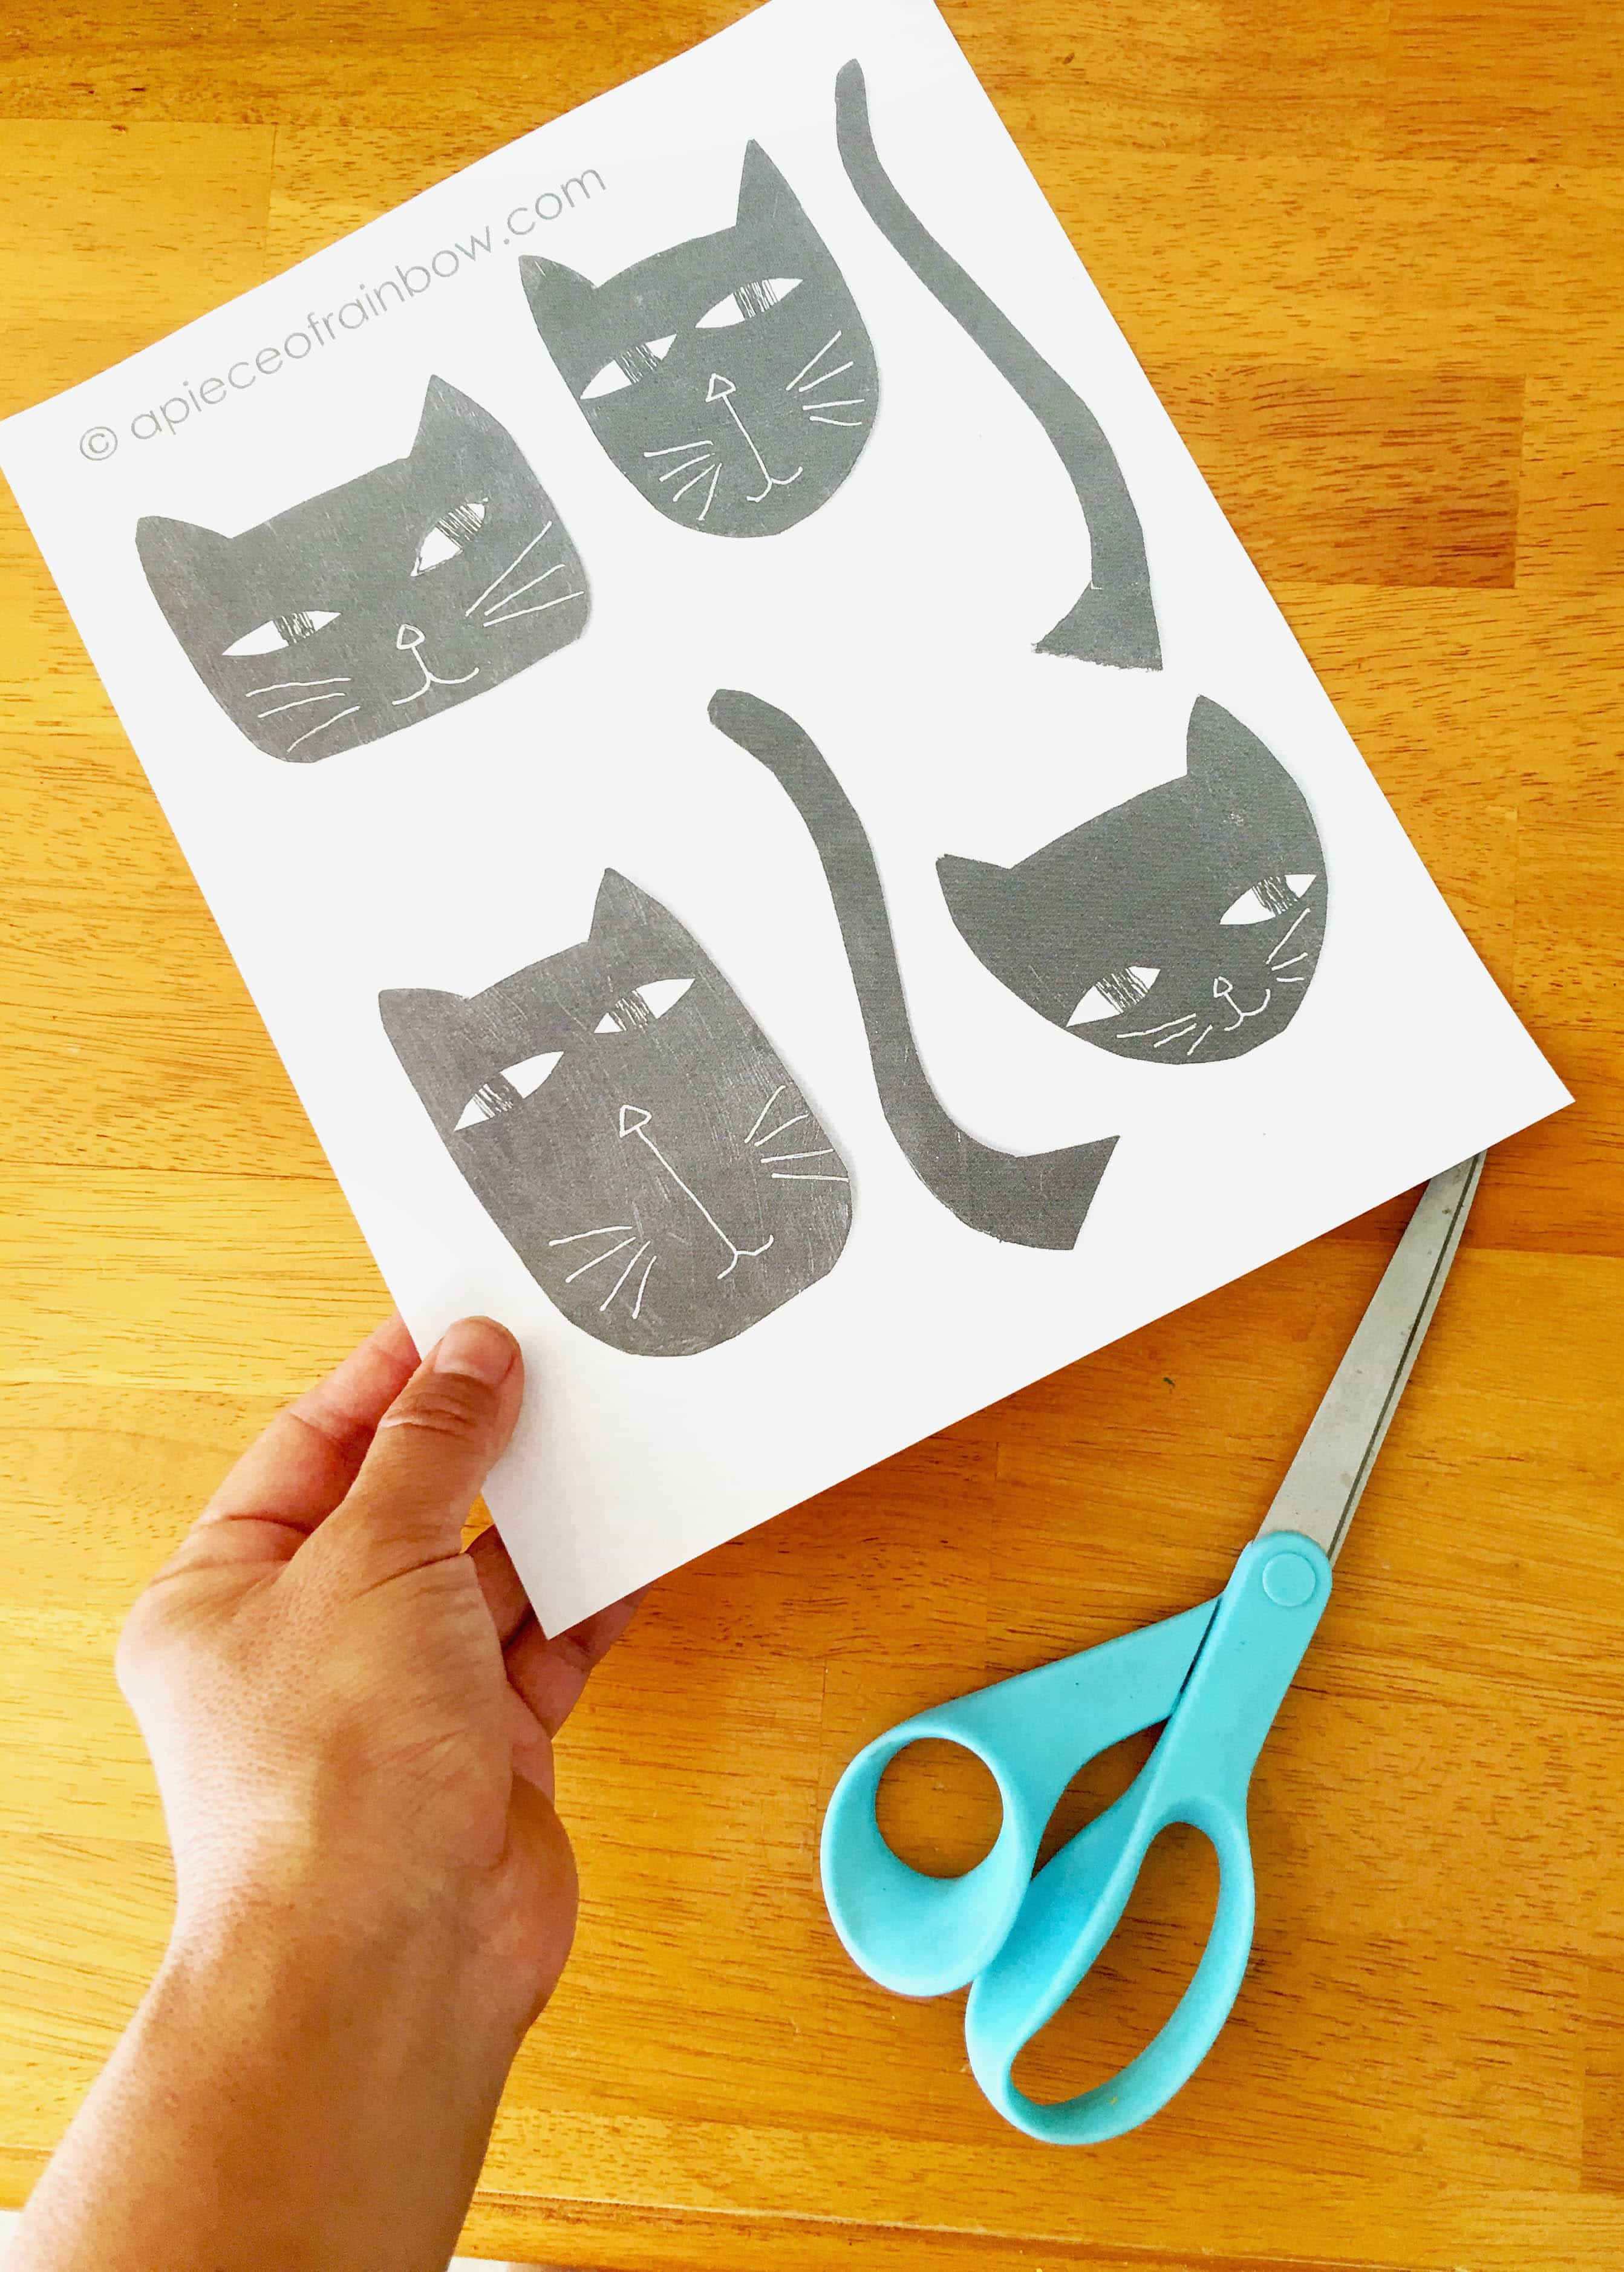 wickedly fun halloween cat decorations ($0 easy craft!) - a piece of